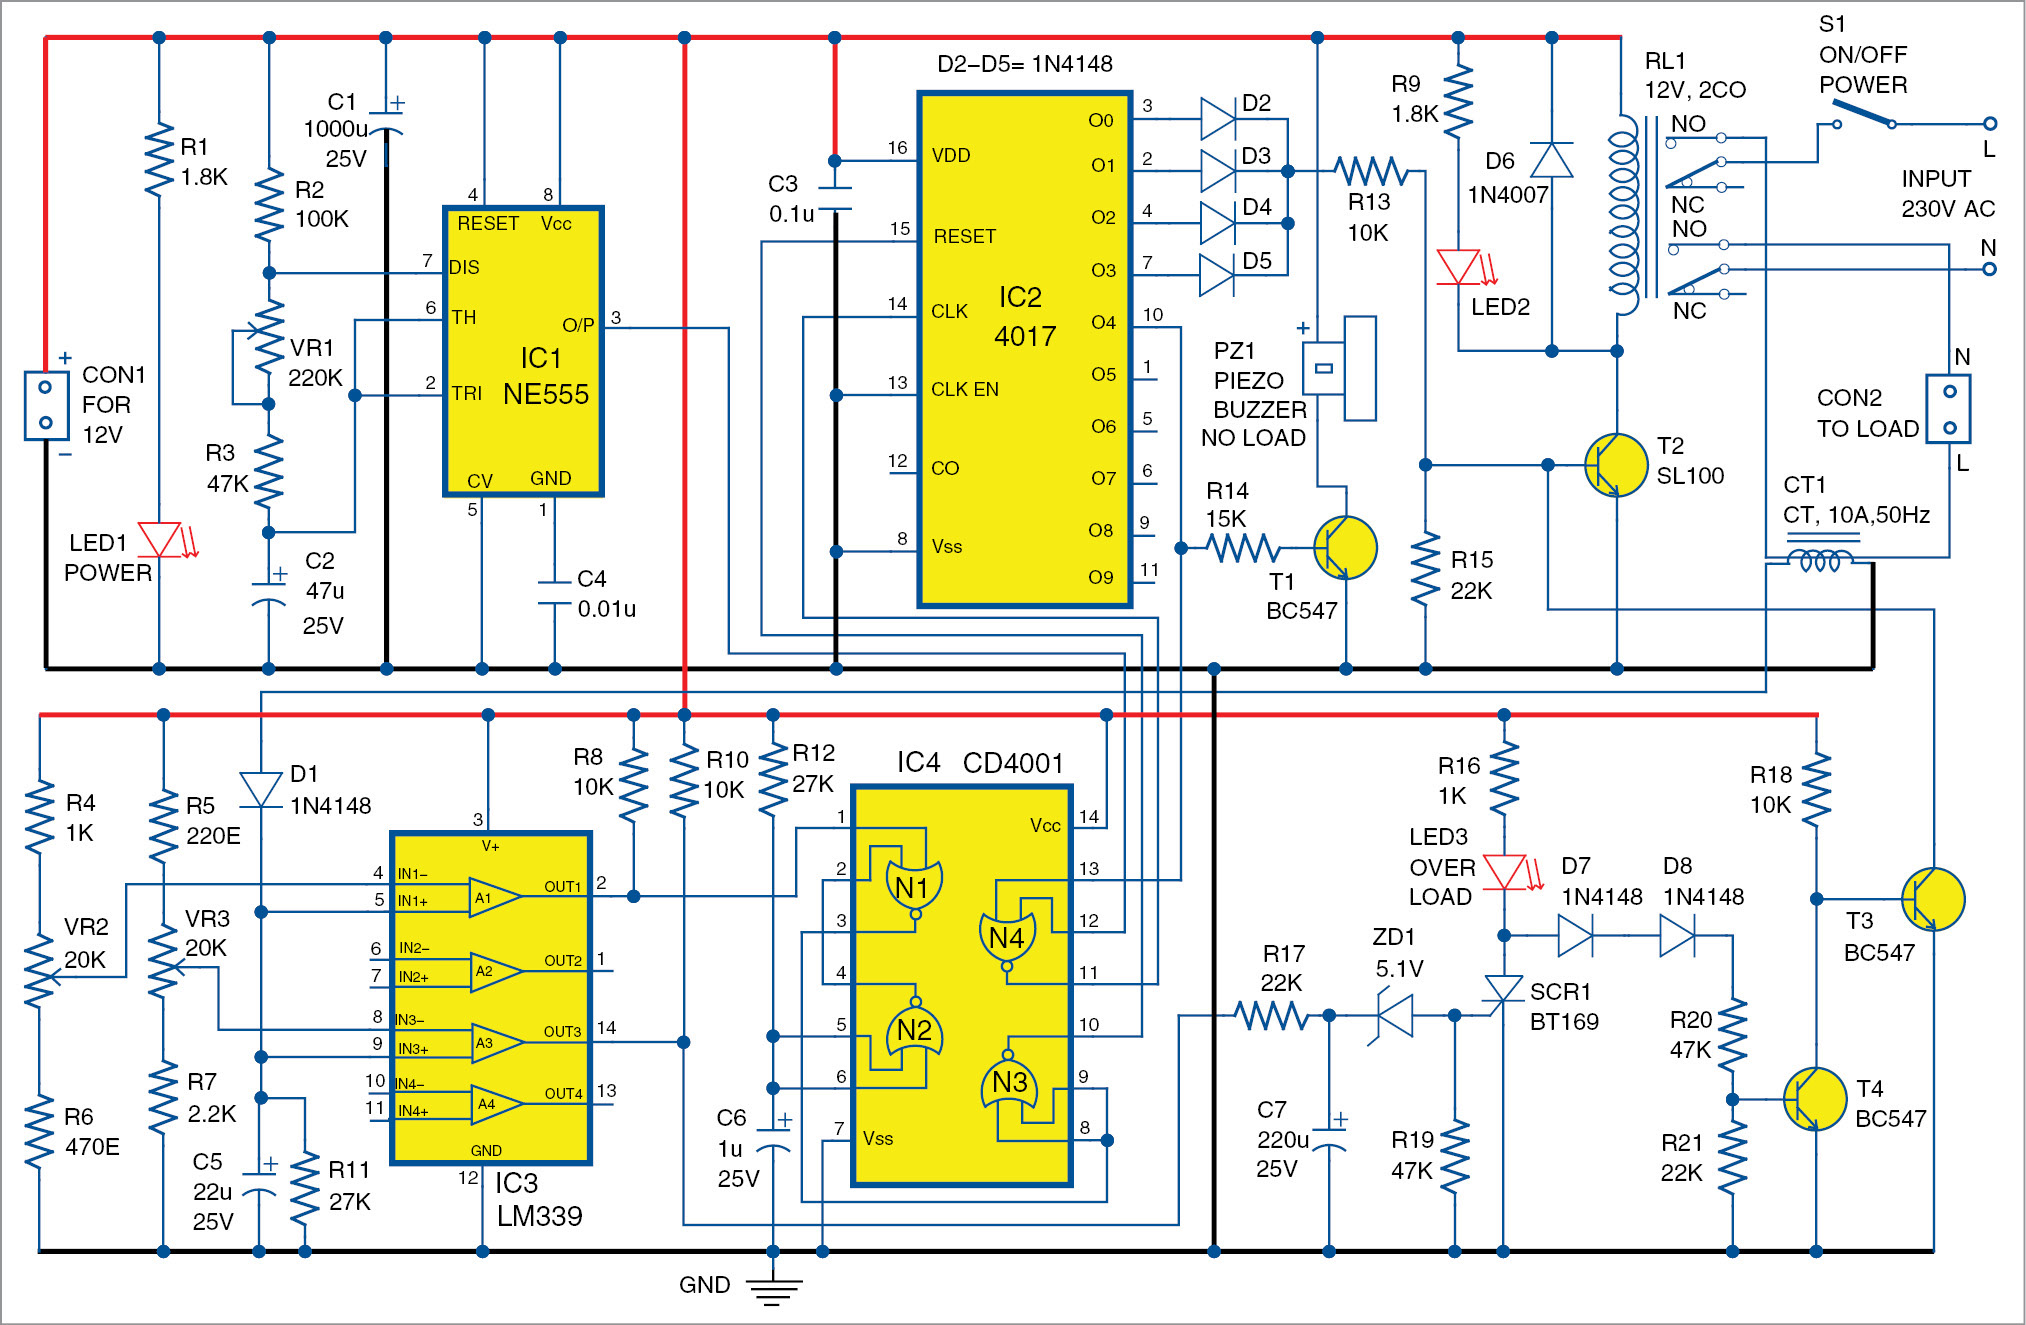 Wiring Diagram For Overload Relay Moreover Thermal Overload Relay